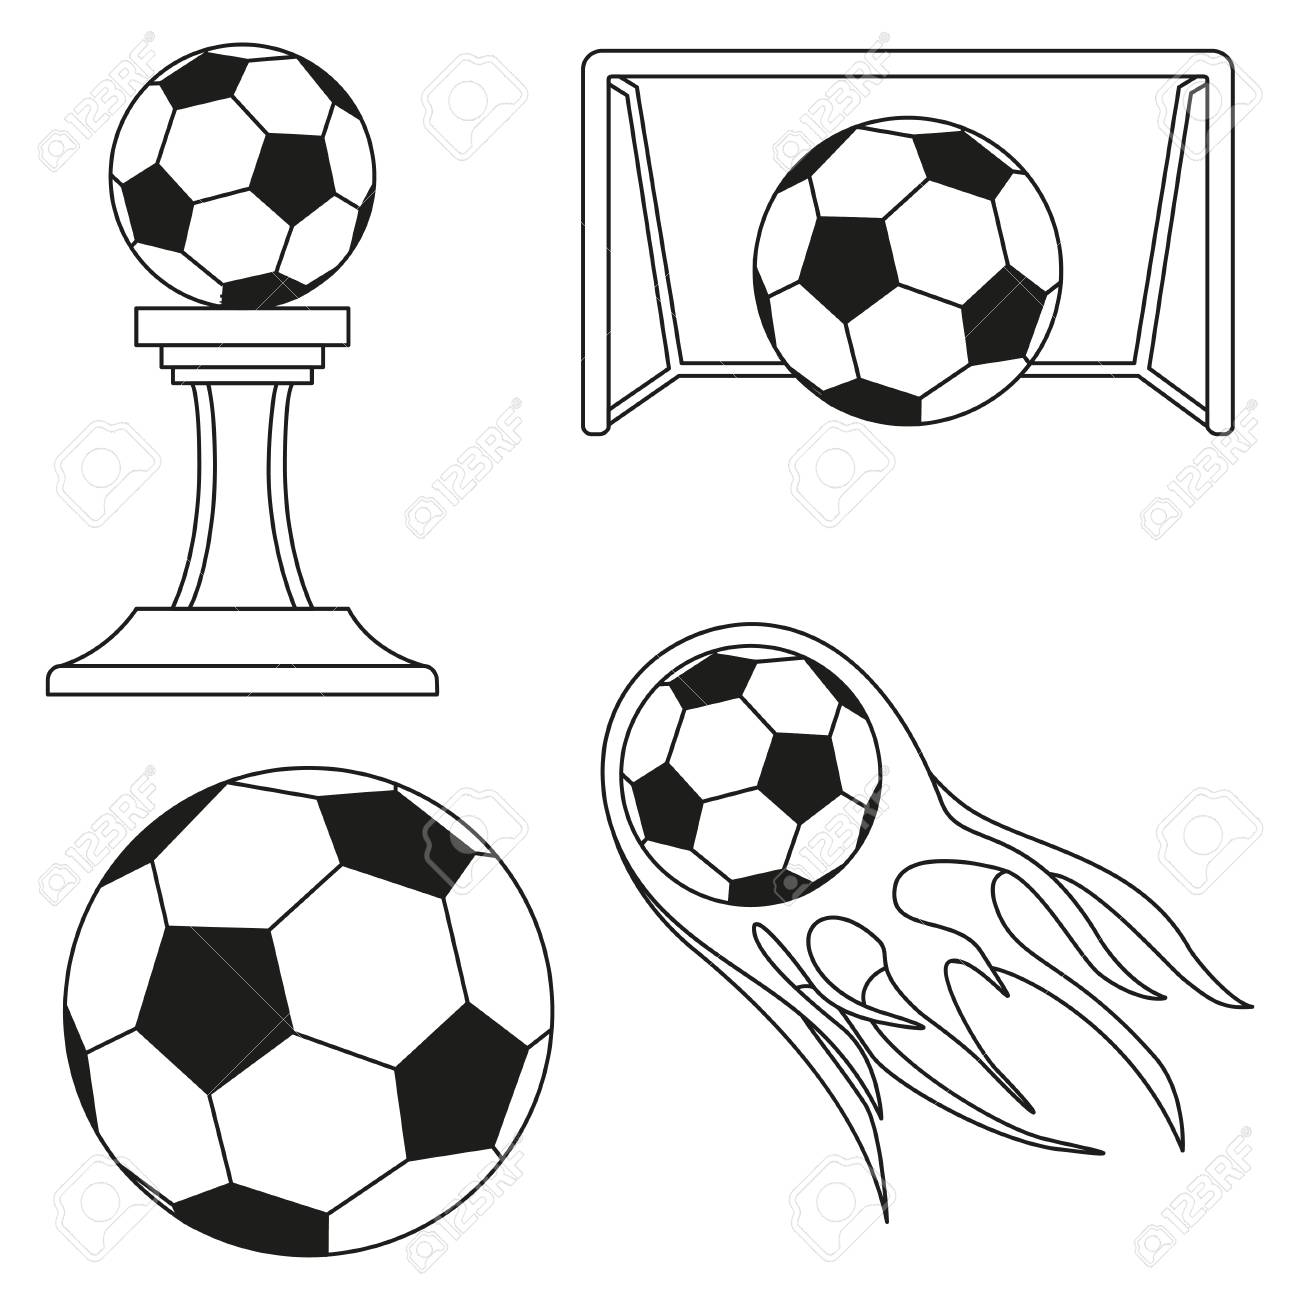 Black and white soccer goals set sport vector illustration for icon sticker sign